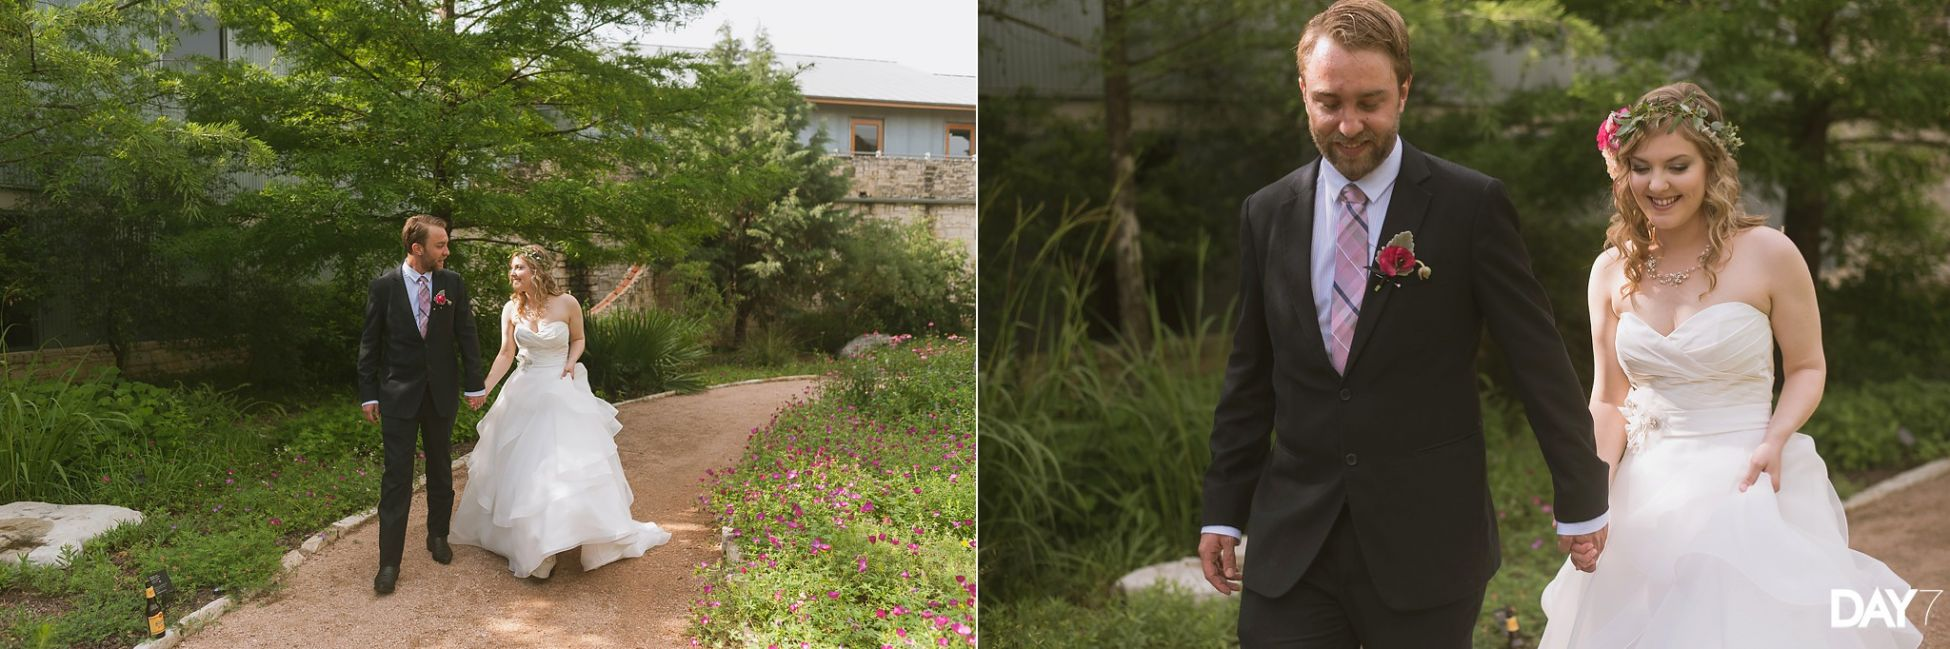 Wildflower Center Wedding Austin